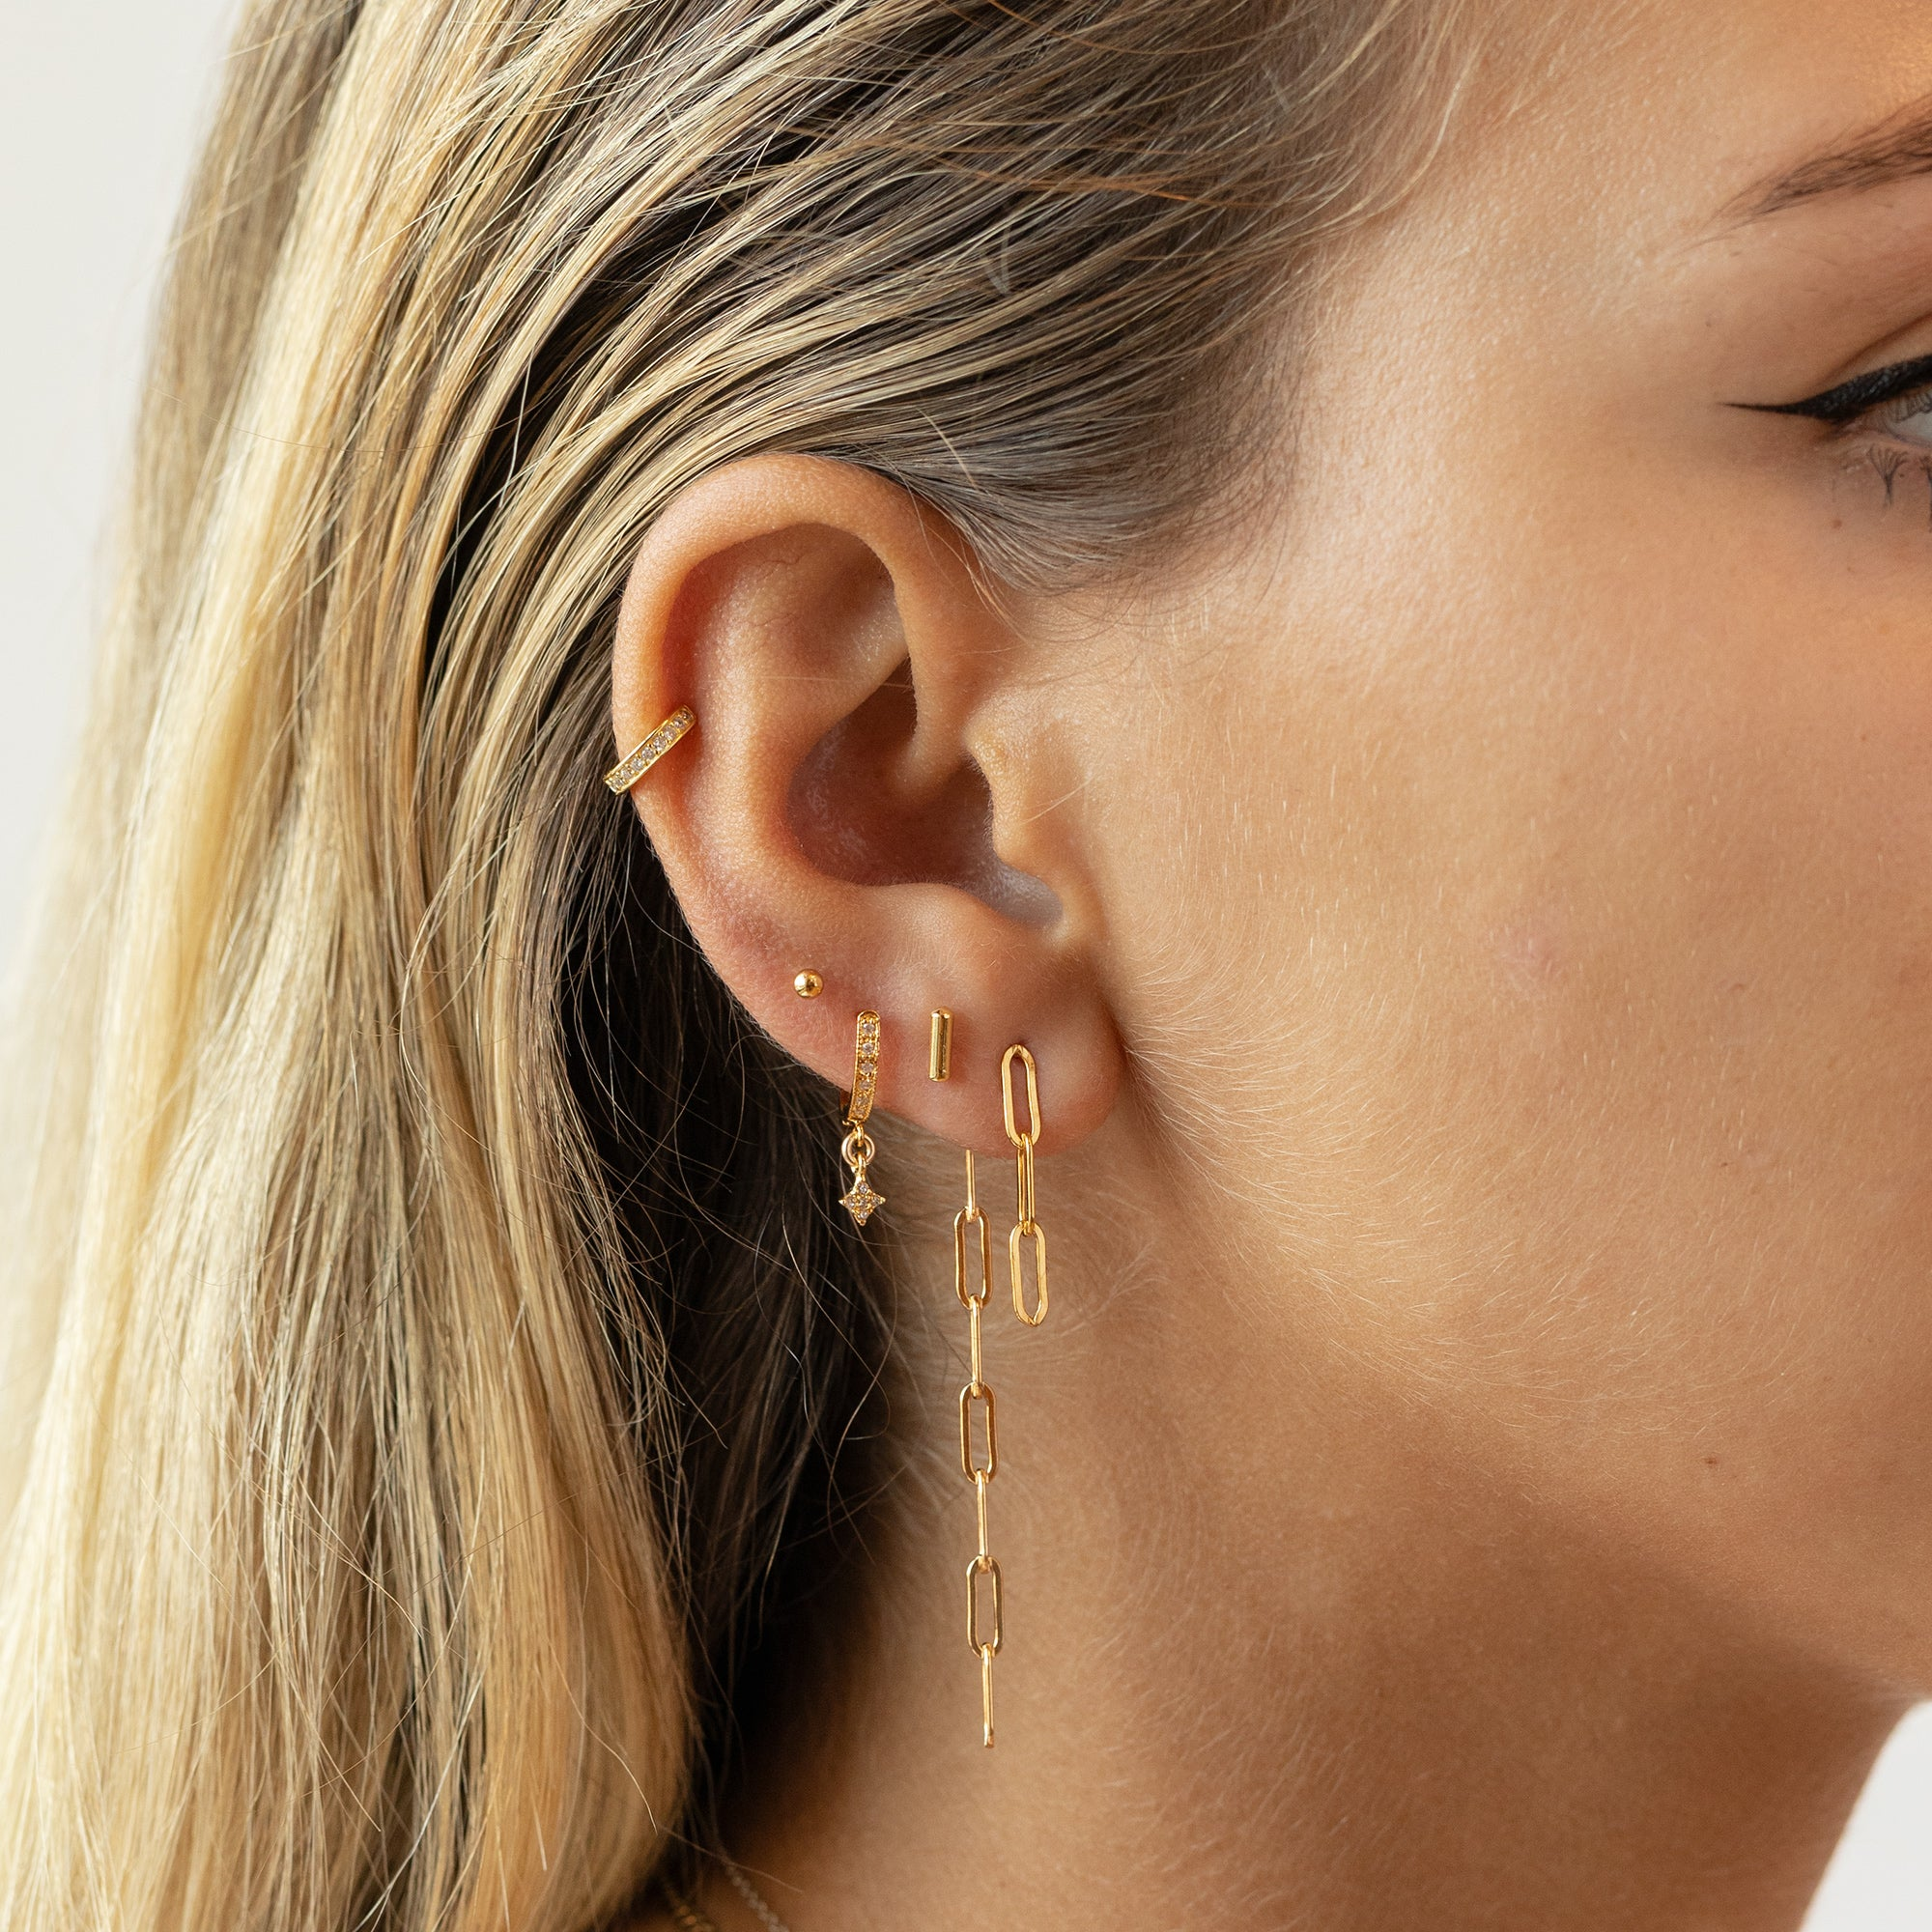 The chain jacket earring in gold is a dangle earring that hangs off the ear.